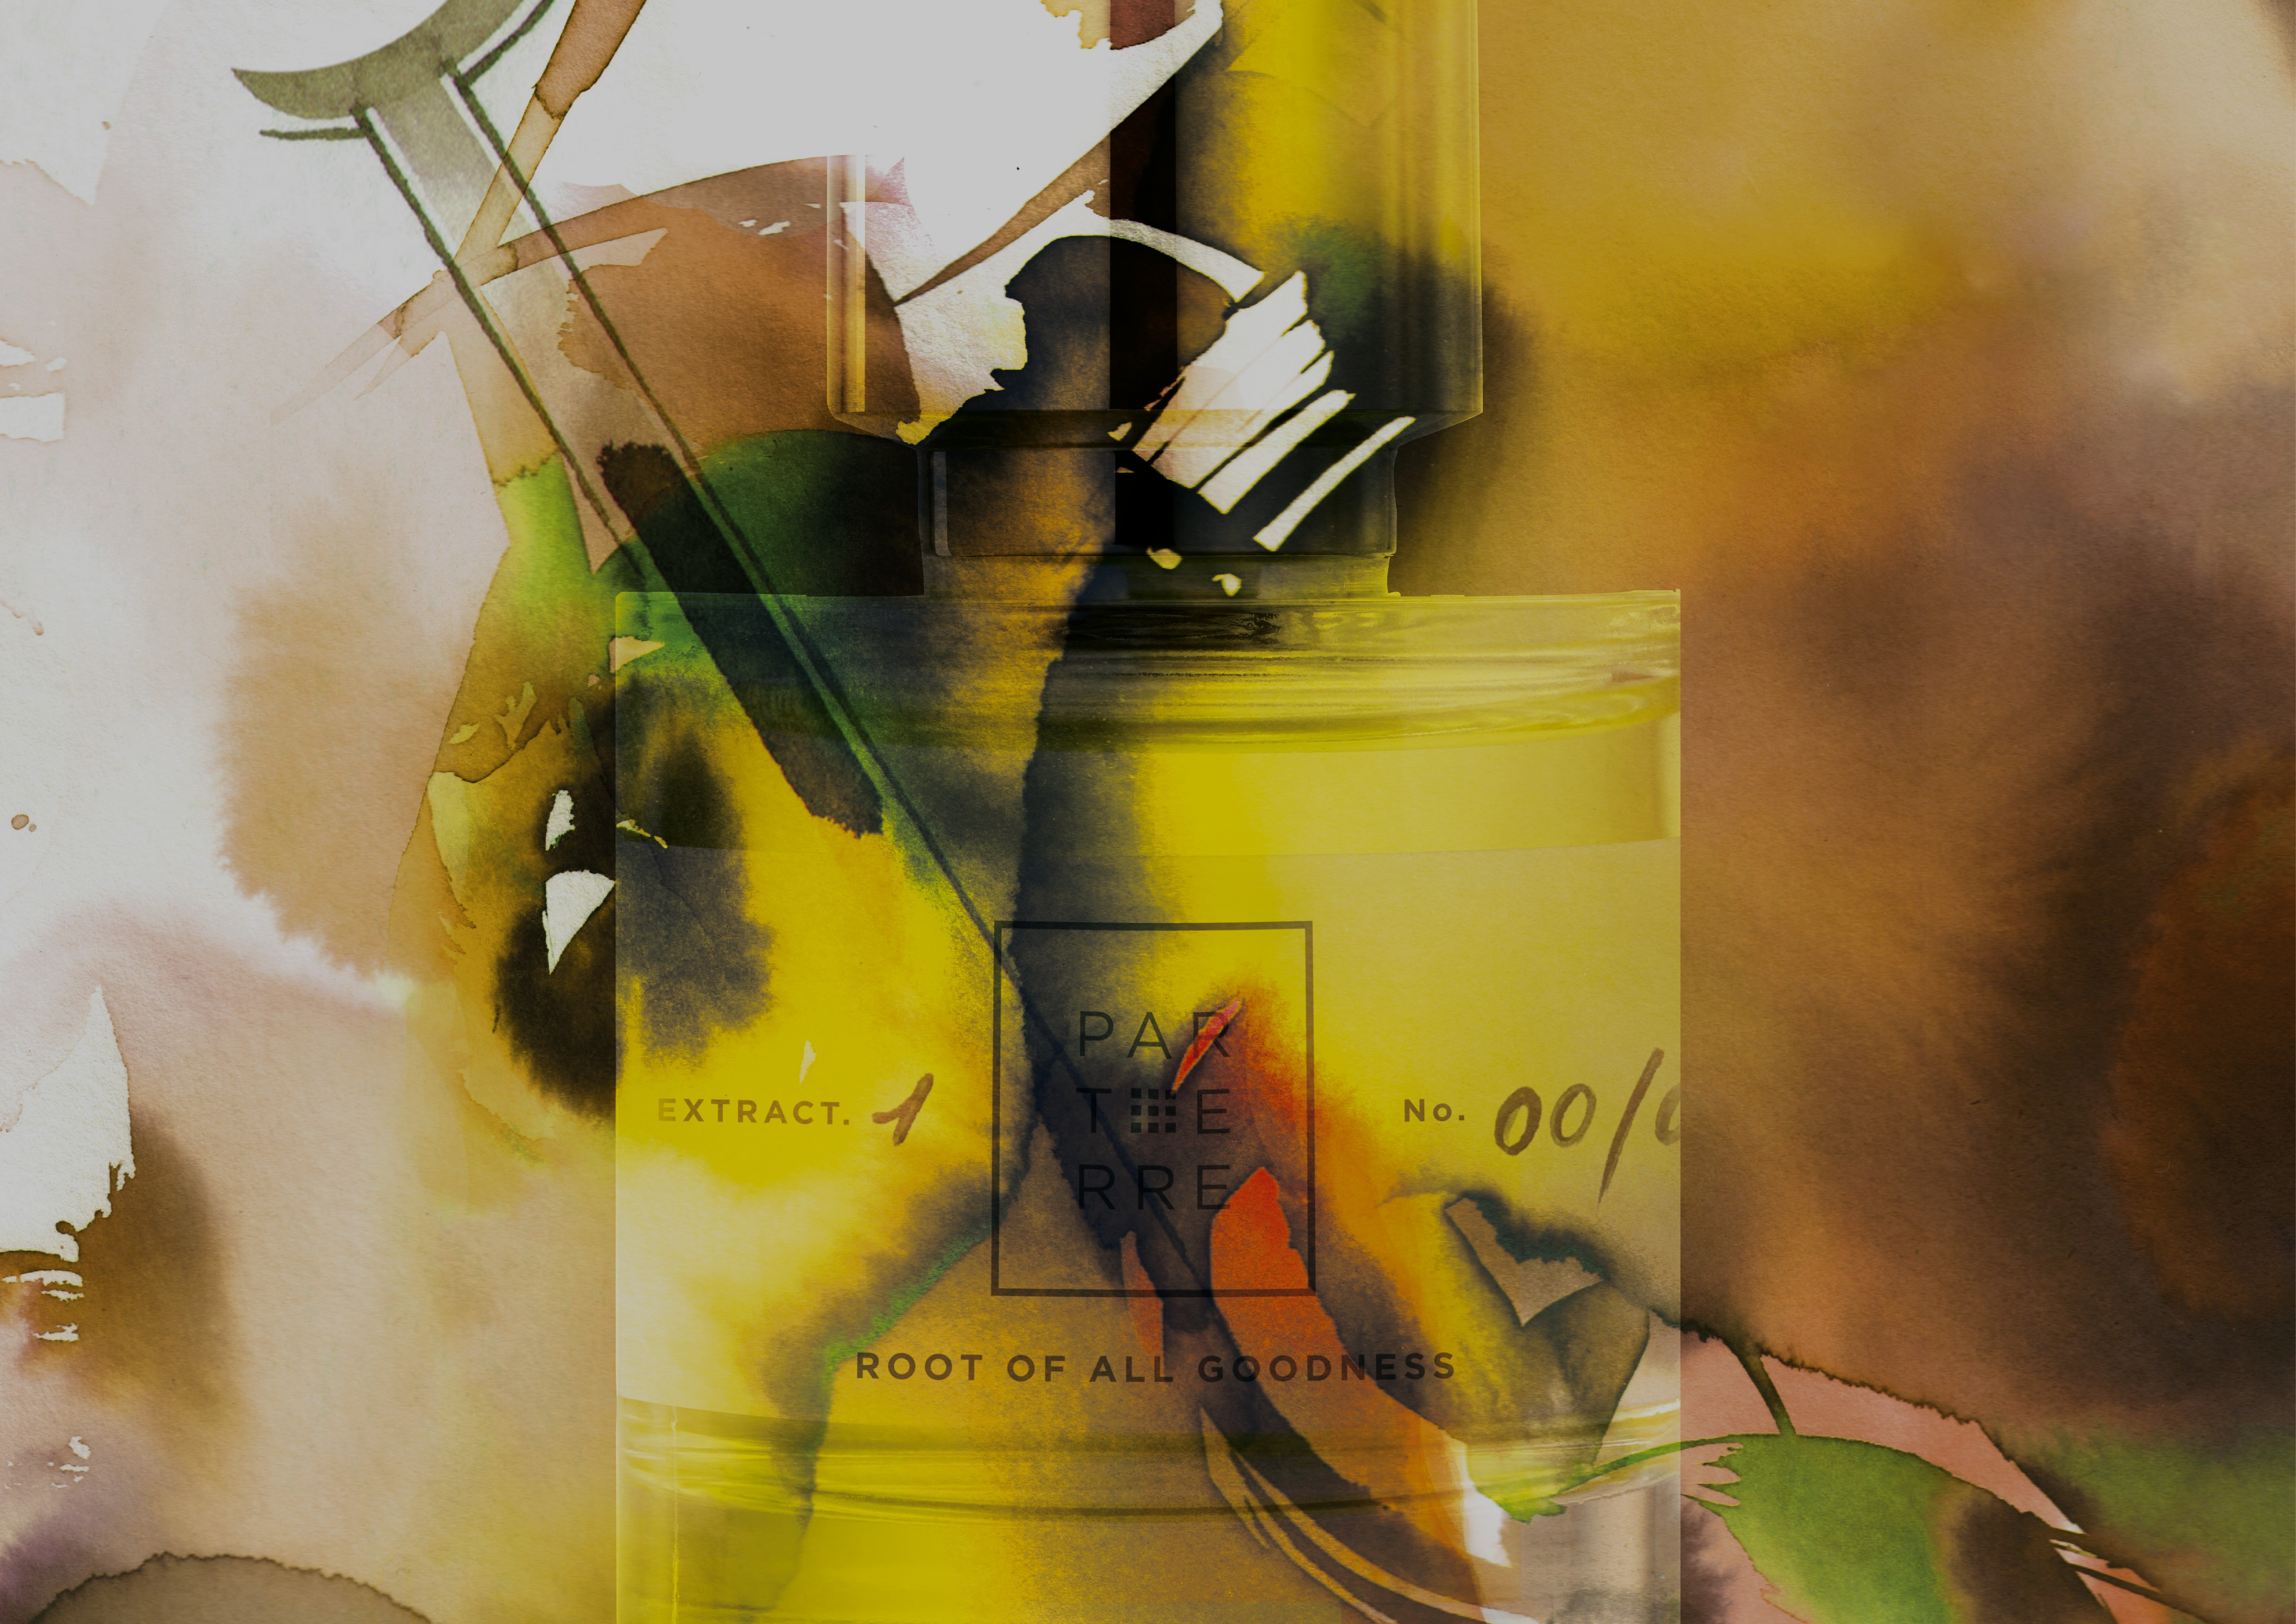 66fresh citrus vibrant\FRESH. CITRUS. VIBRANT.664856ROR descriptorvThe composition lingers on the skin with musks subtle shades of incense. Inspired by the refreshing and vibrant river that runs through the watermill of Keyneston. 303220500.218runduplicate postrunslider revolution text spinning around runrunA Tribute To Edith - USEedithedithEdith - three wordsRoot Three Words Edith descriptorRoot descriptorNotes - EdithNotes - Rootwww.rootrunRoot Of All Goodness USEroot of all goodness 2Root OF All Goodness Watercolour